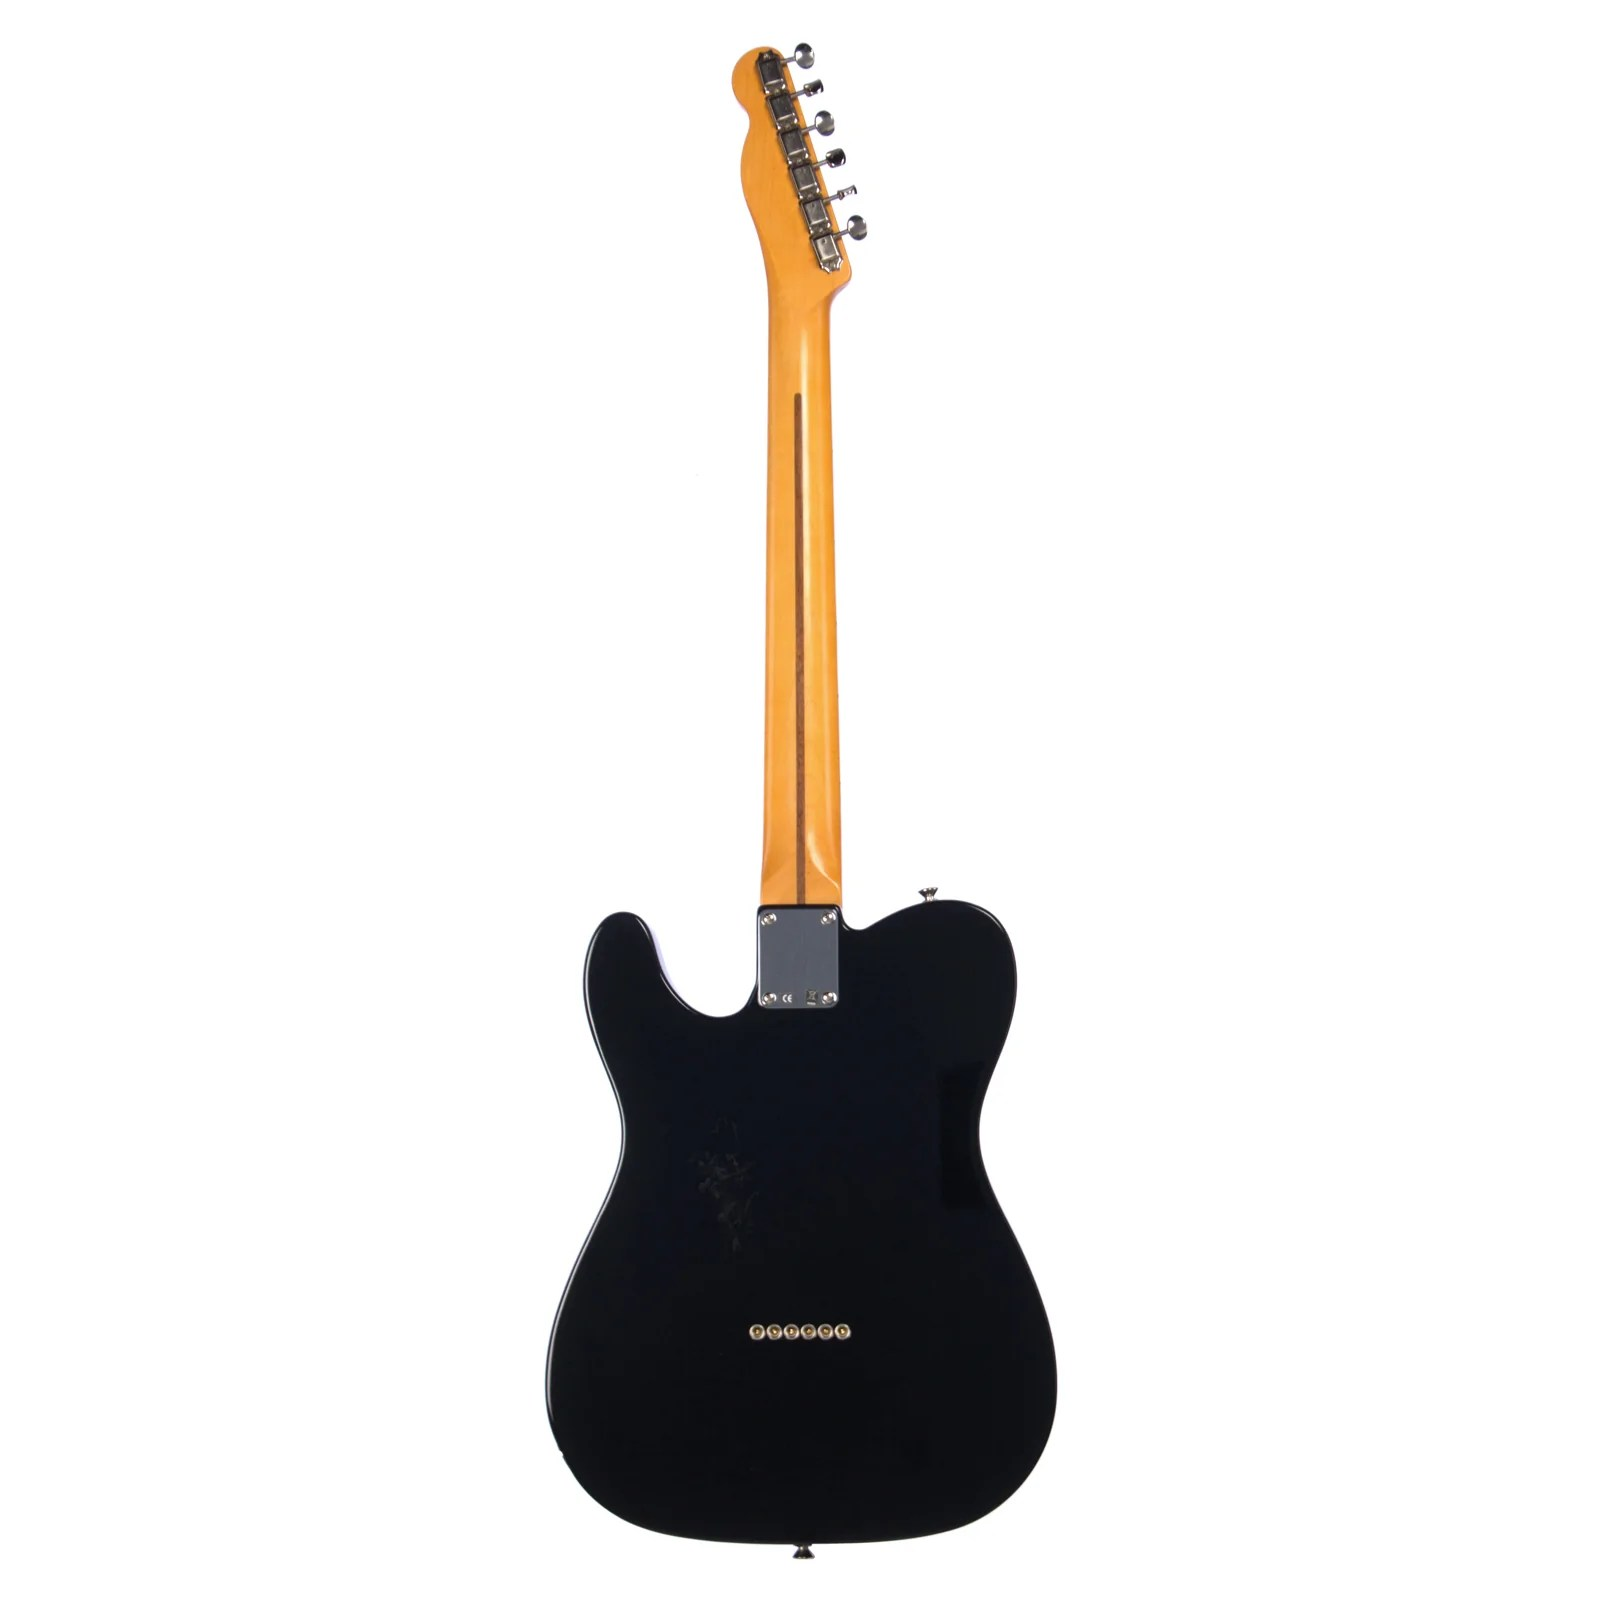 used fender vintage hot rod 52 telecaster black electric guitar made in [ 1600 x 1600 Pixel ]